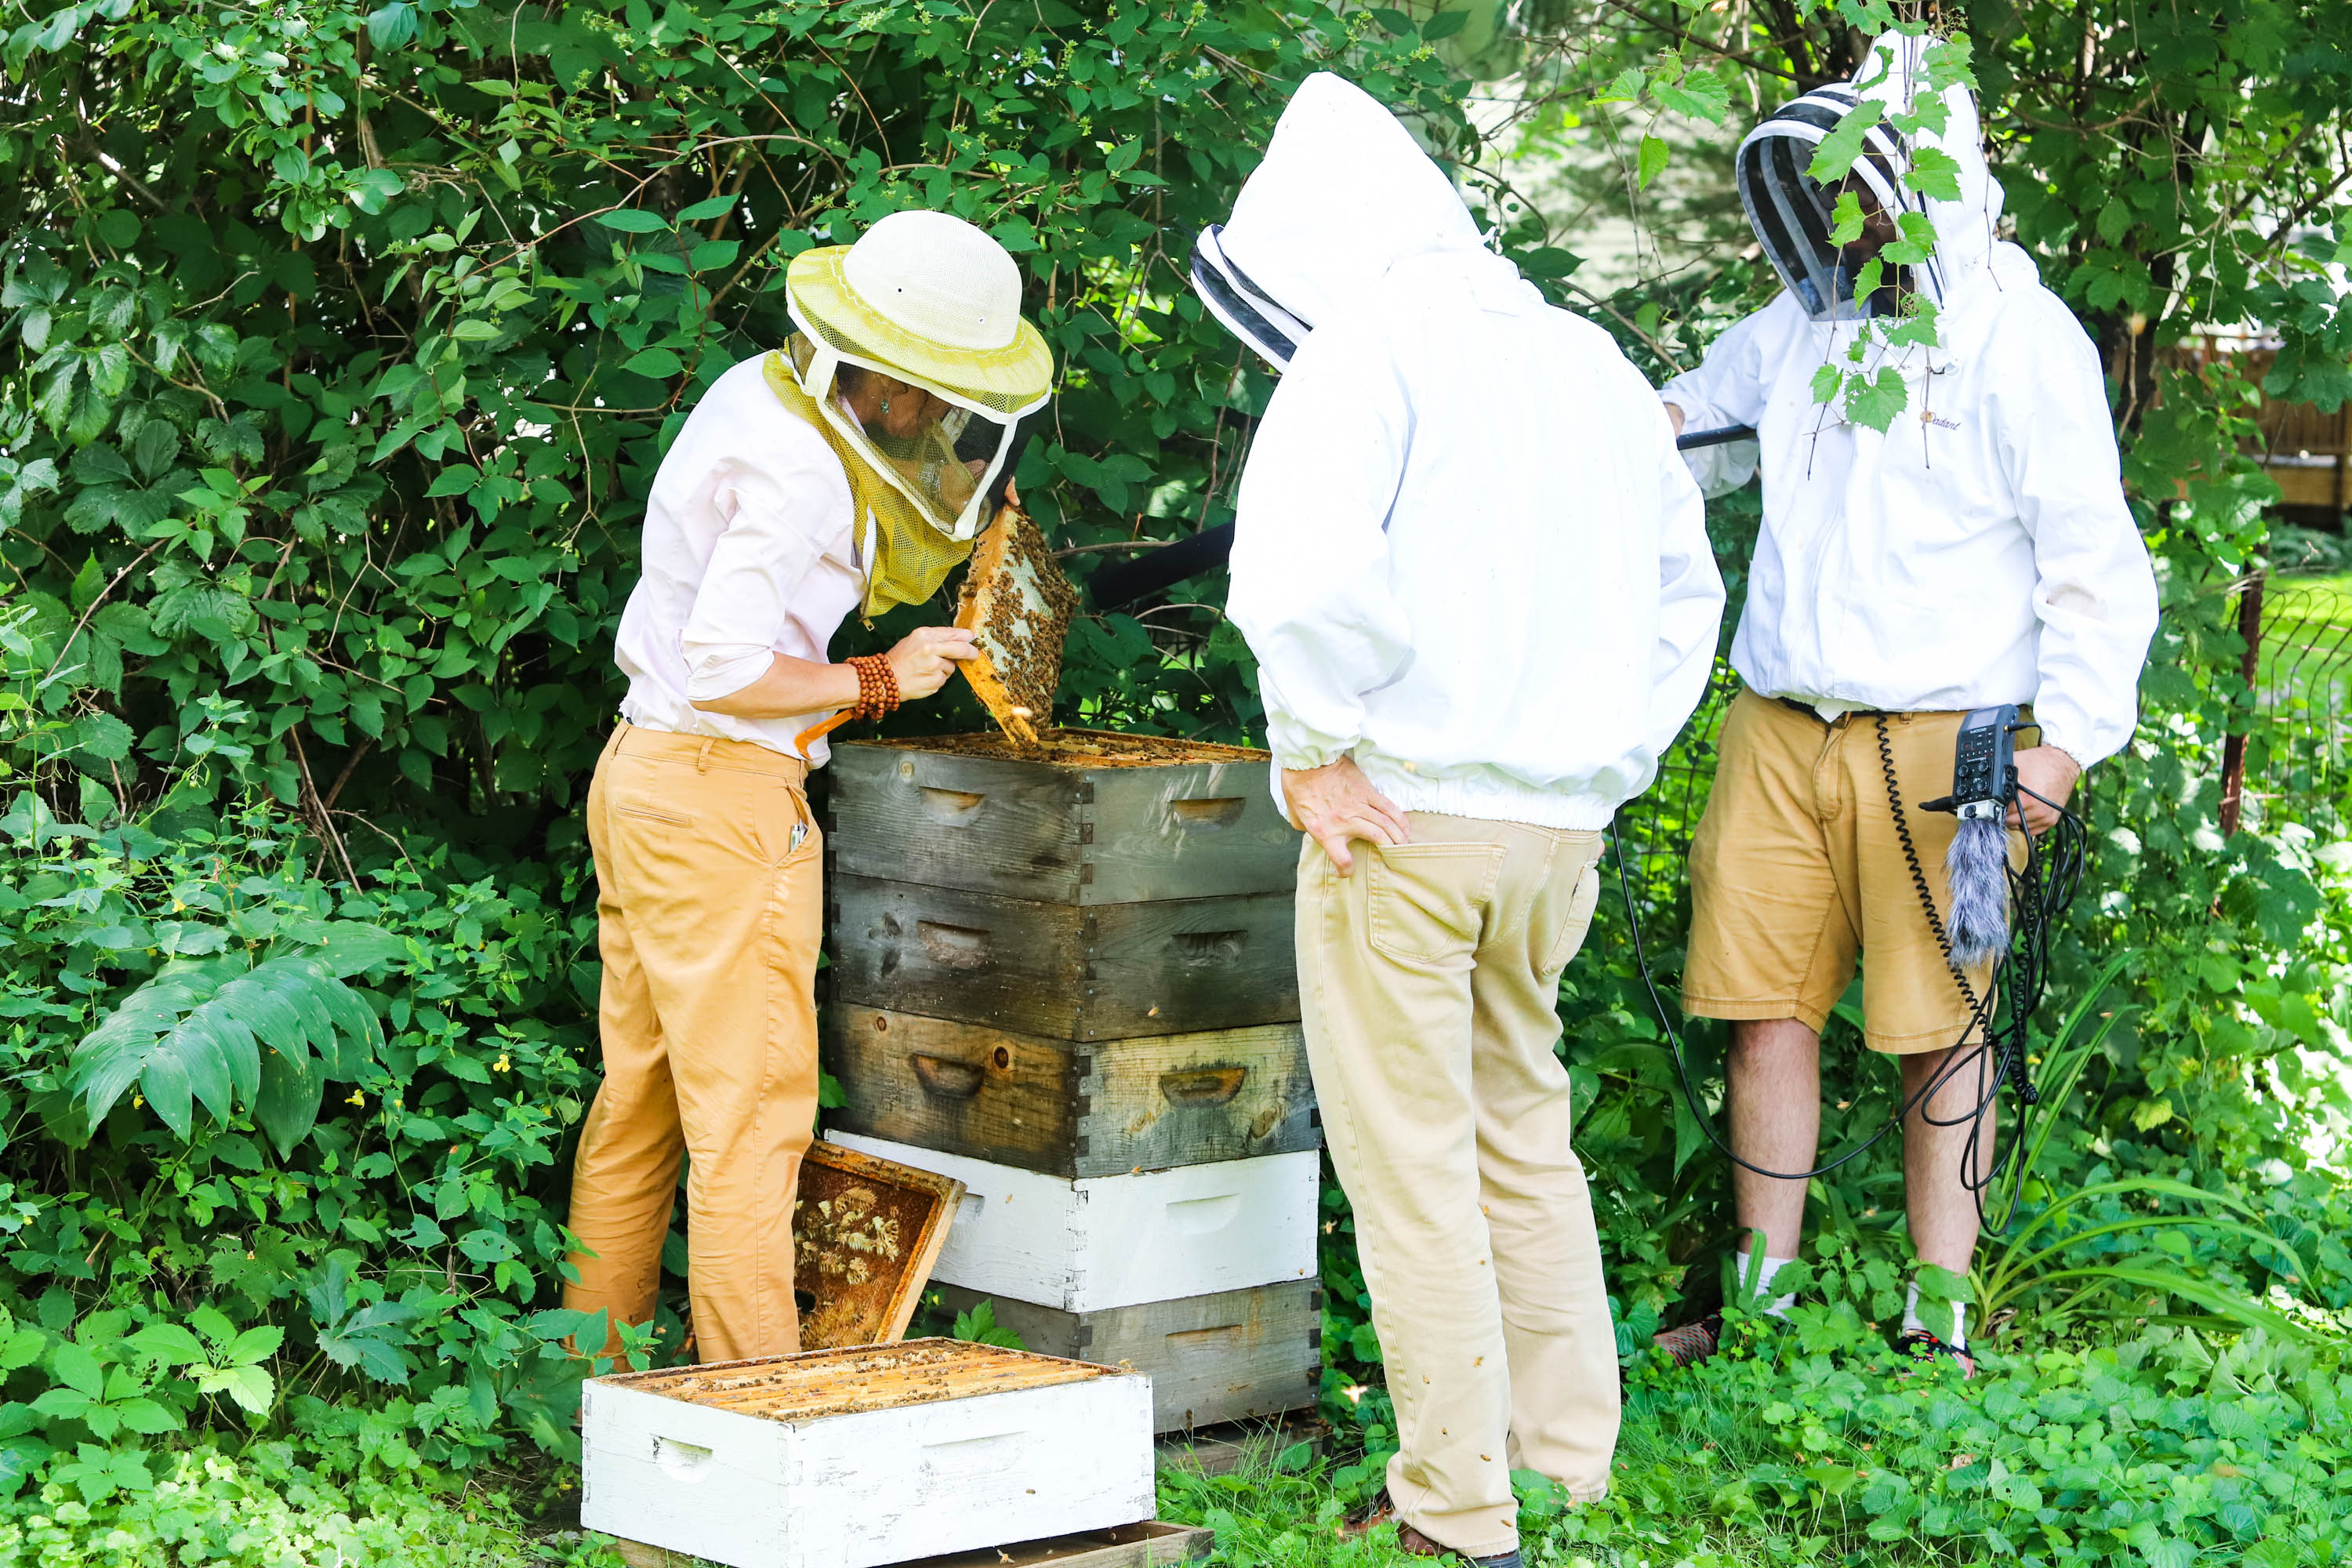 Steve learns about different bee sounds and hive activities while producer Mark Riechers gets in close to hear the bees come in and out. &nbsp;<em>Shannon Henry Kleiber (TTBOOK)</em>